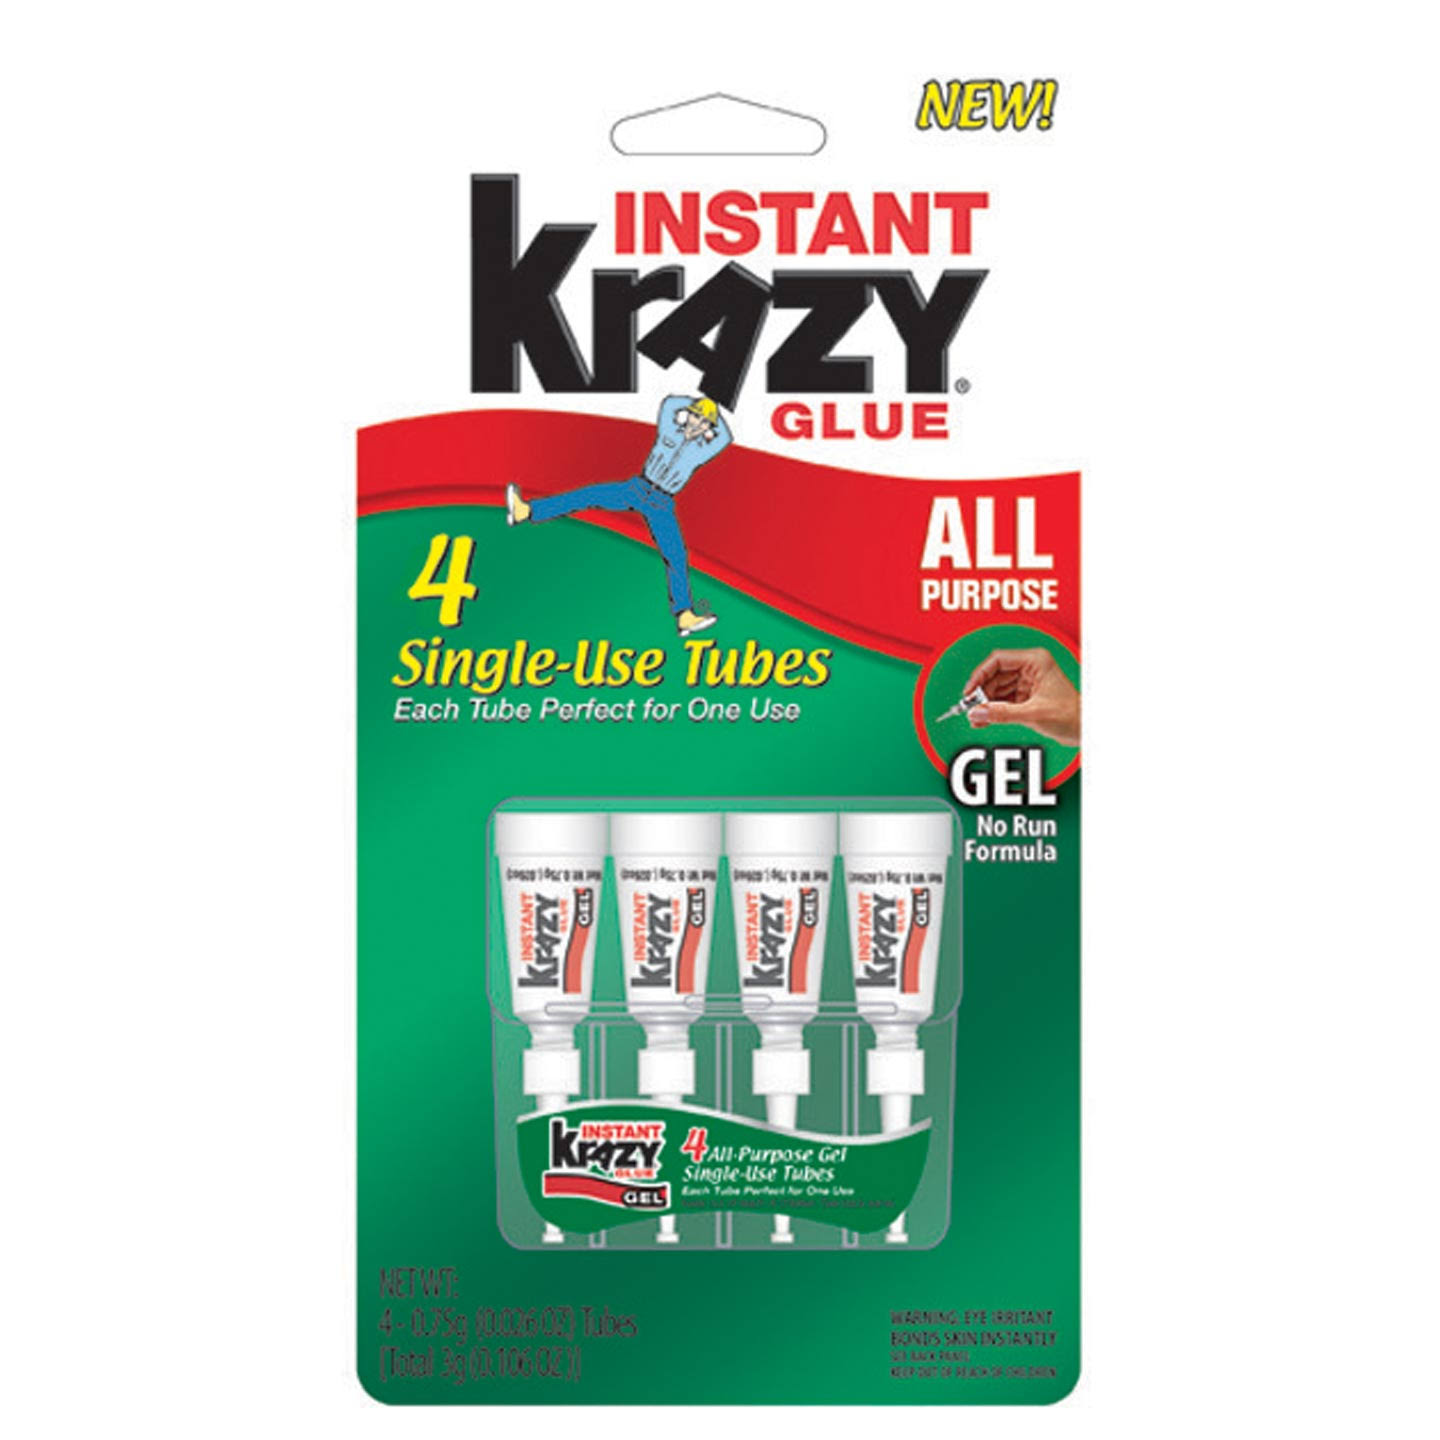 Krazy Glue All Purpose Single Use Tubes - 4 ct, 0.75g